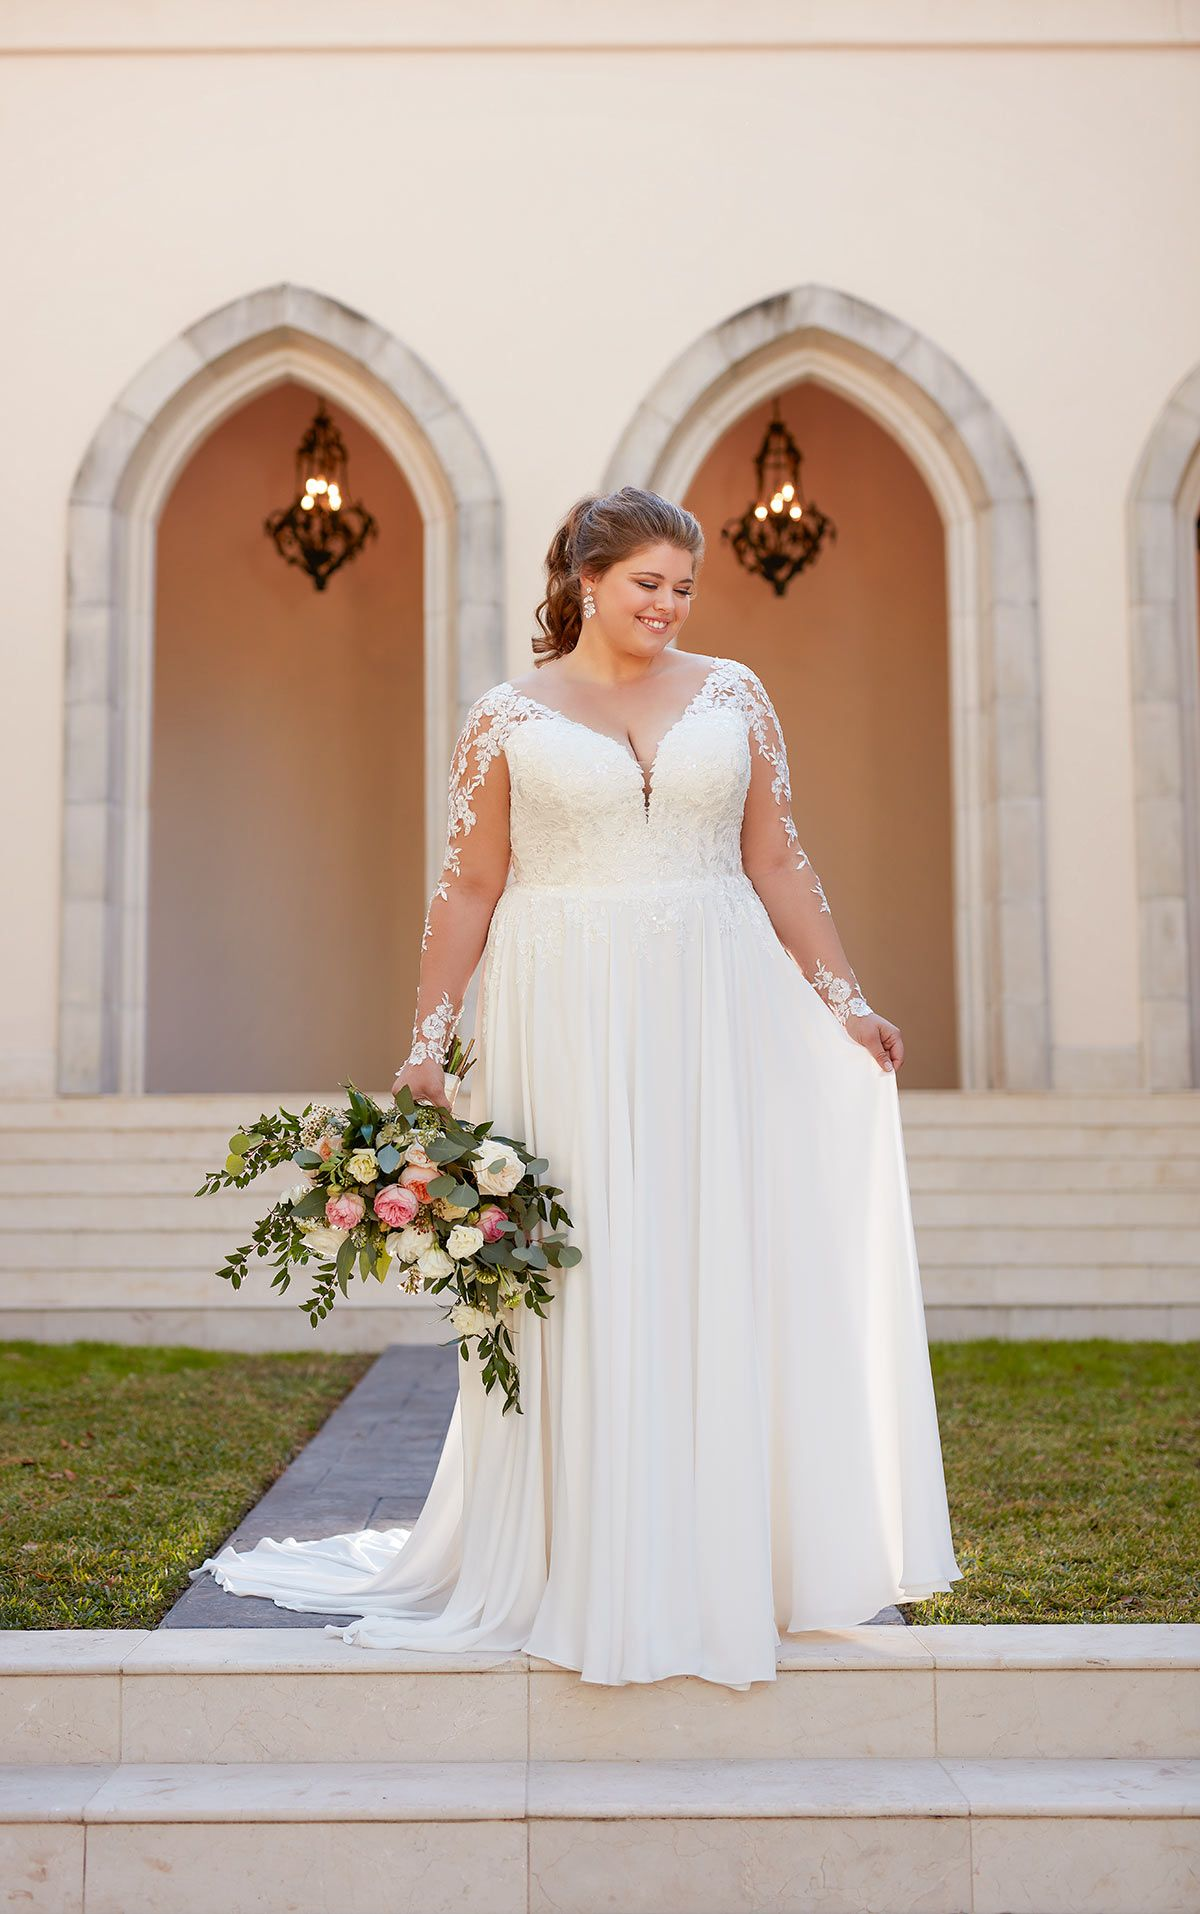 Long Sleeved Casual Plus Size Wedding Dress Stella York Wedding Dresses Wedding Dresses Plus Size Wedding Gowns Vintage Casual Wedding Dress [ 1914 x 1200 Pixel ]